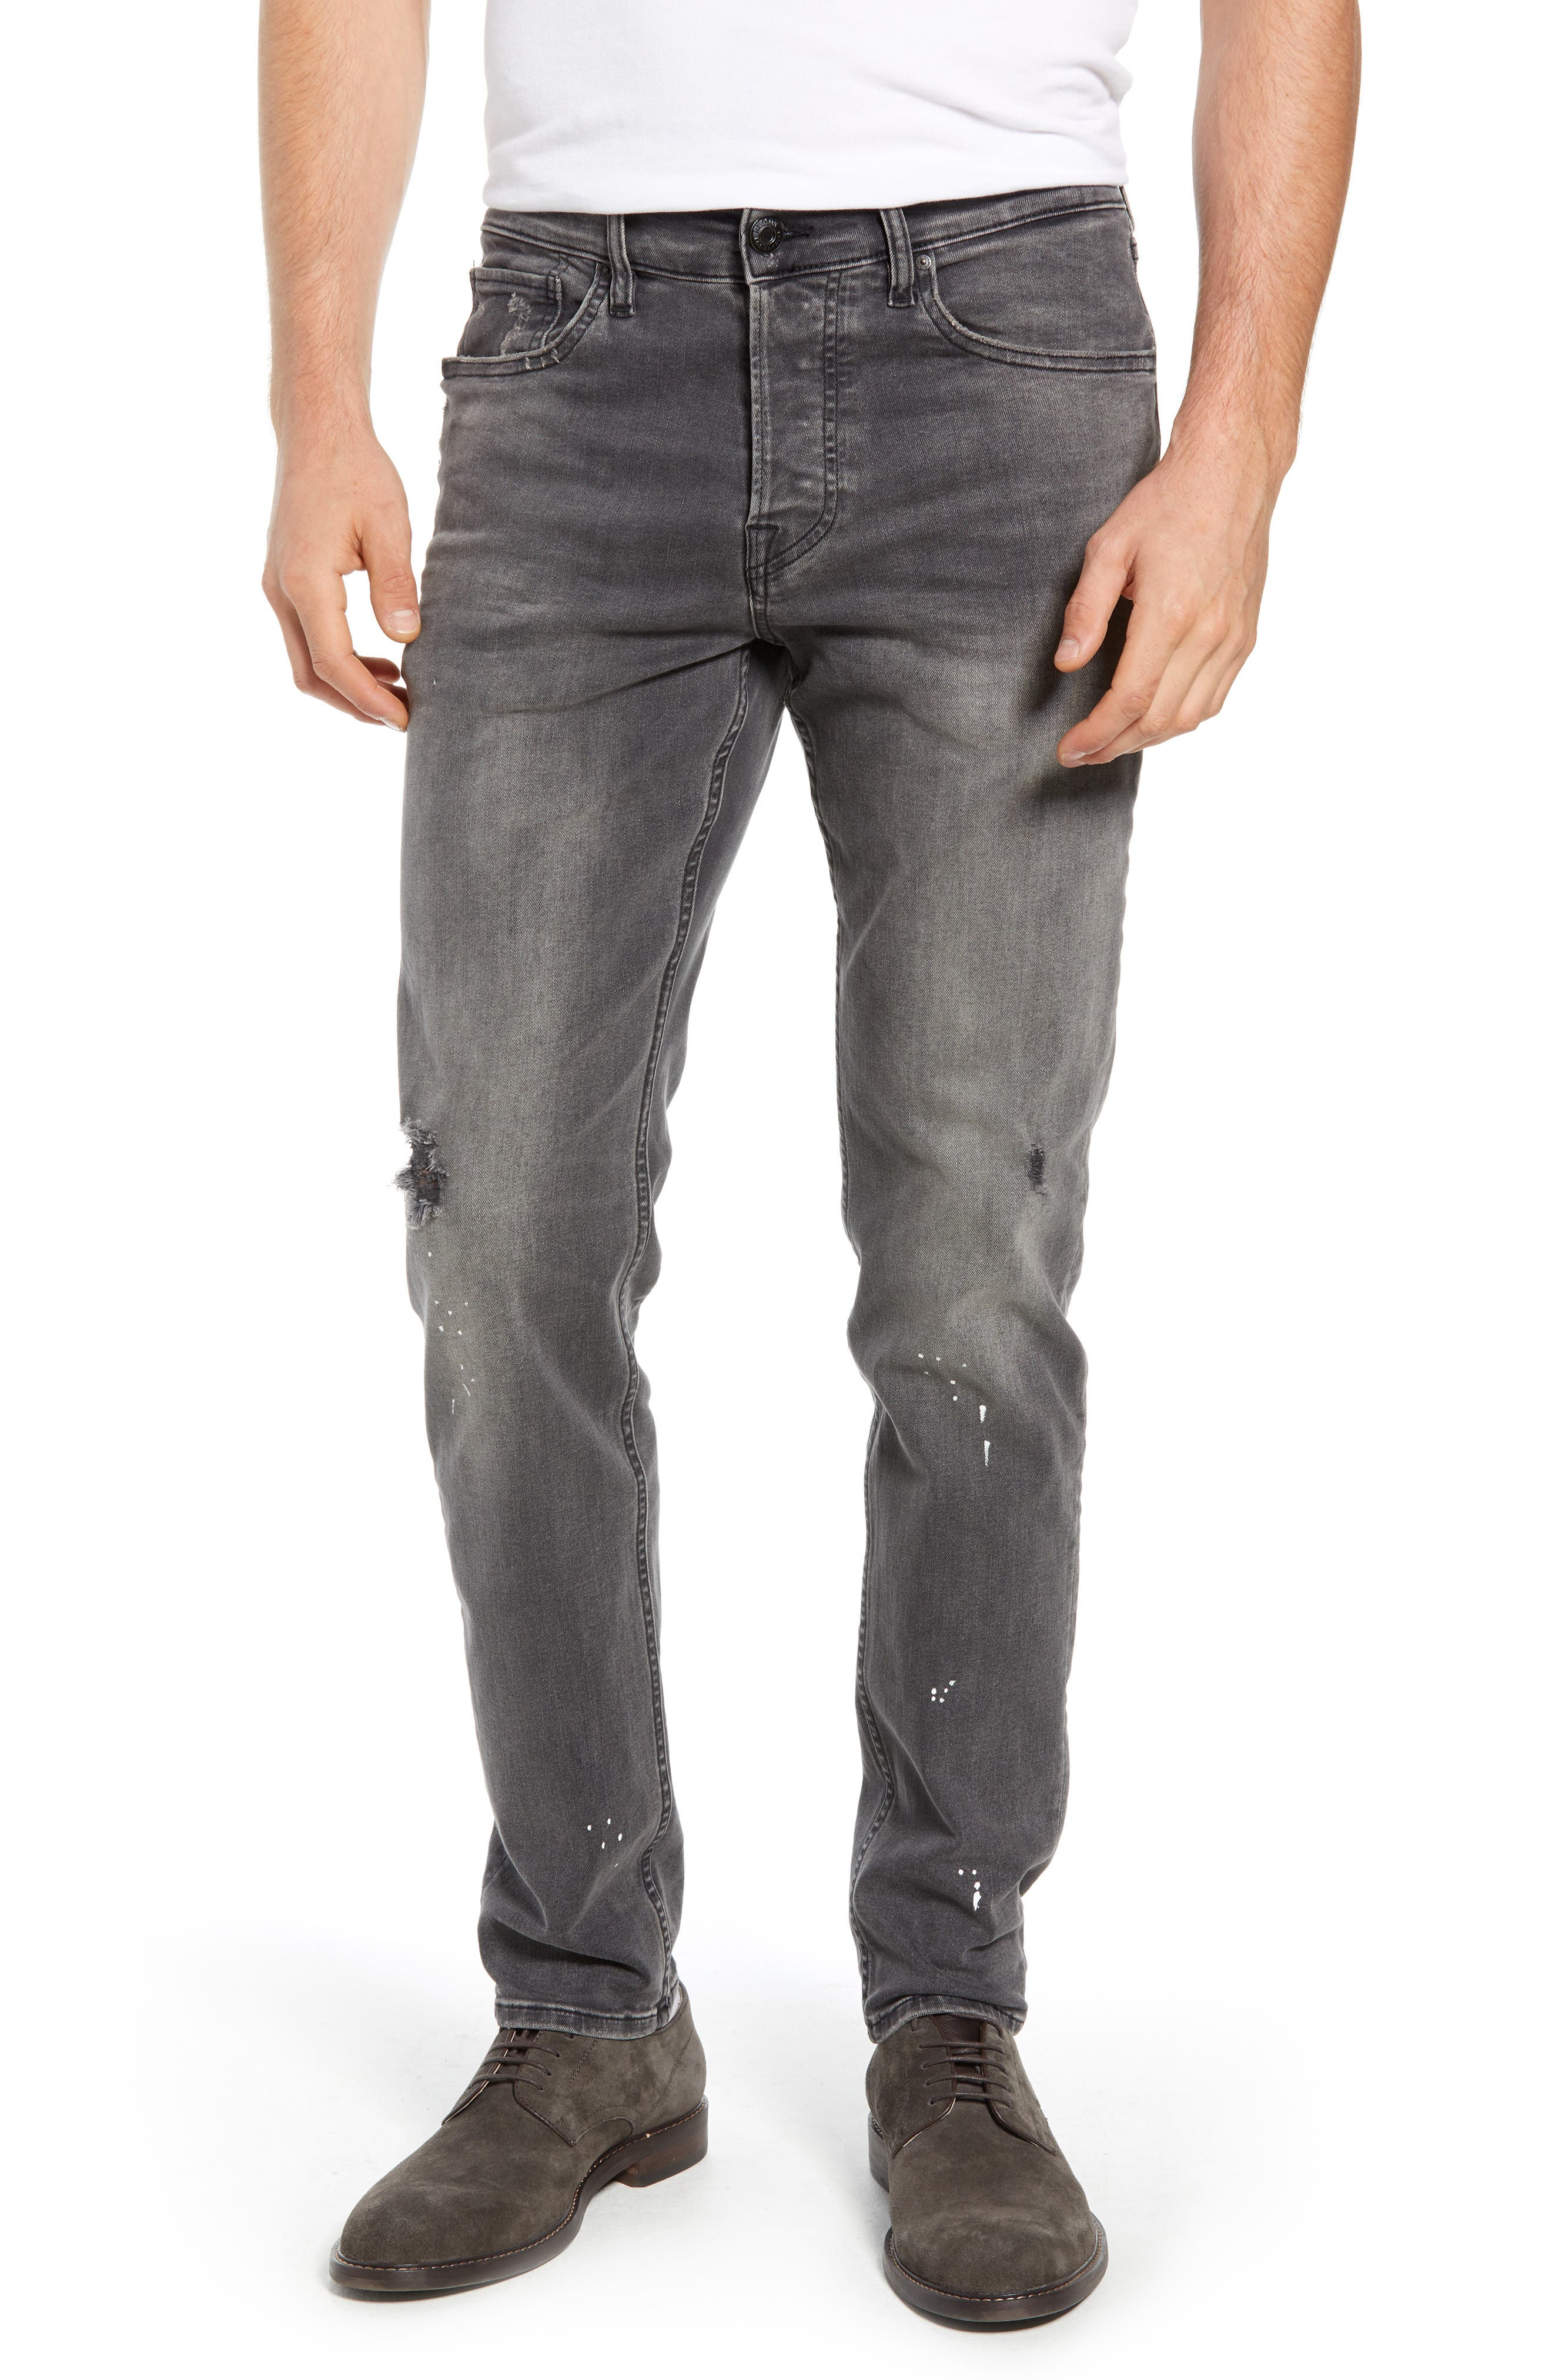 Sartor Slouchy Skinny Fit Jeans,                         Main,                         color, LANG